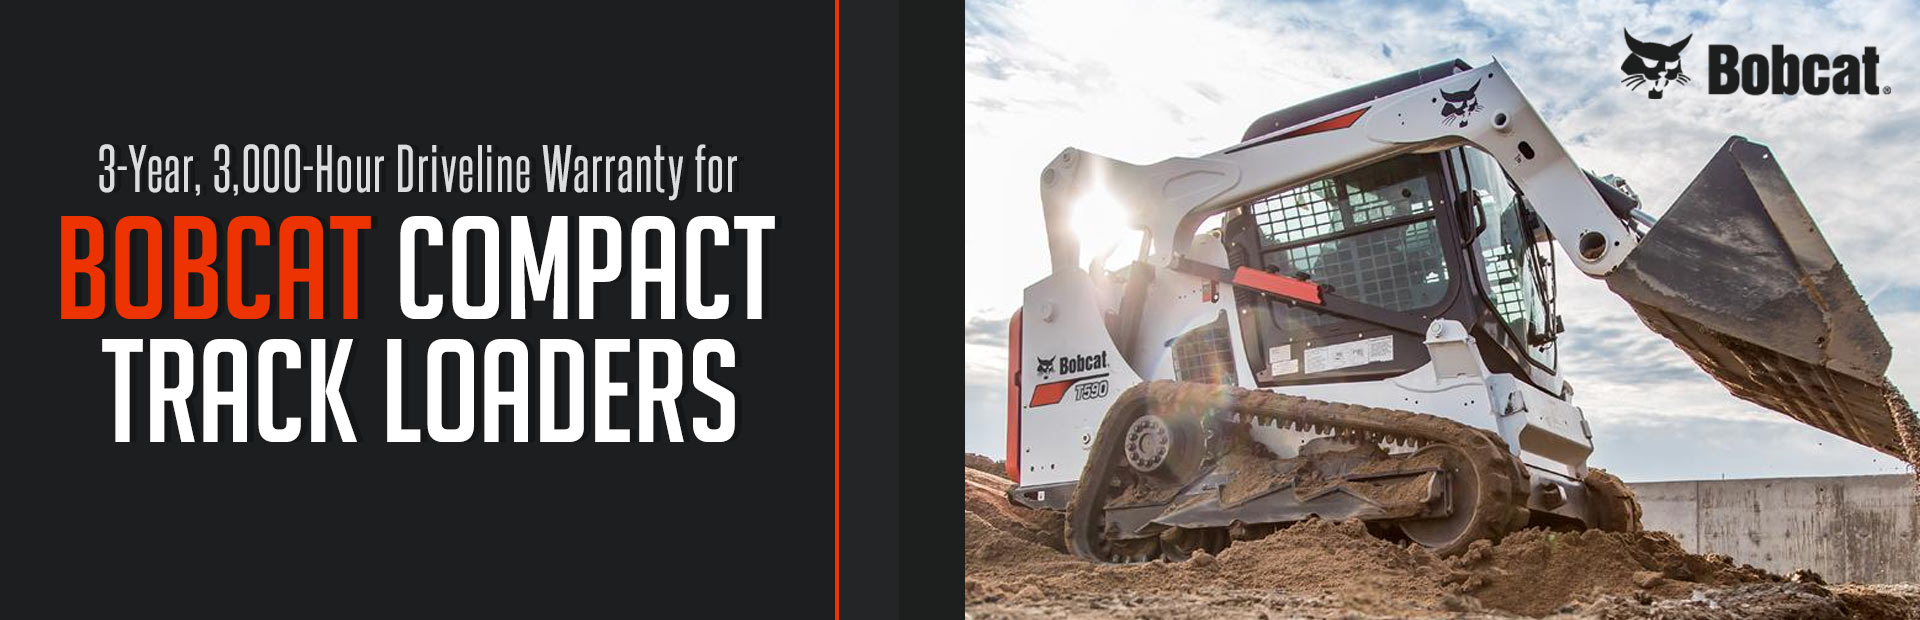 3Yr 3k-Hr Driveline Warranty for Track Loaders